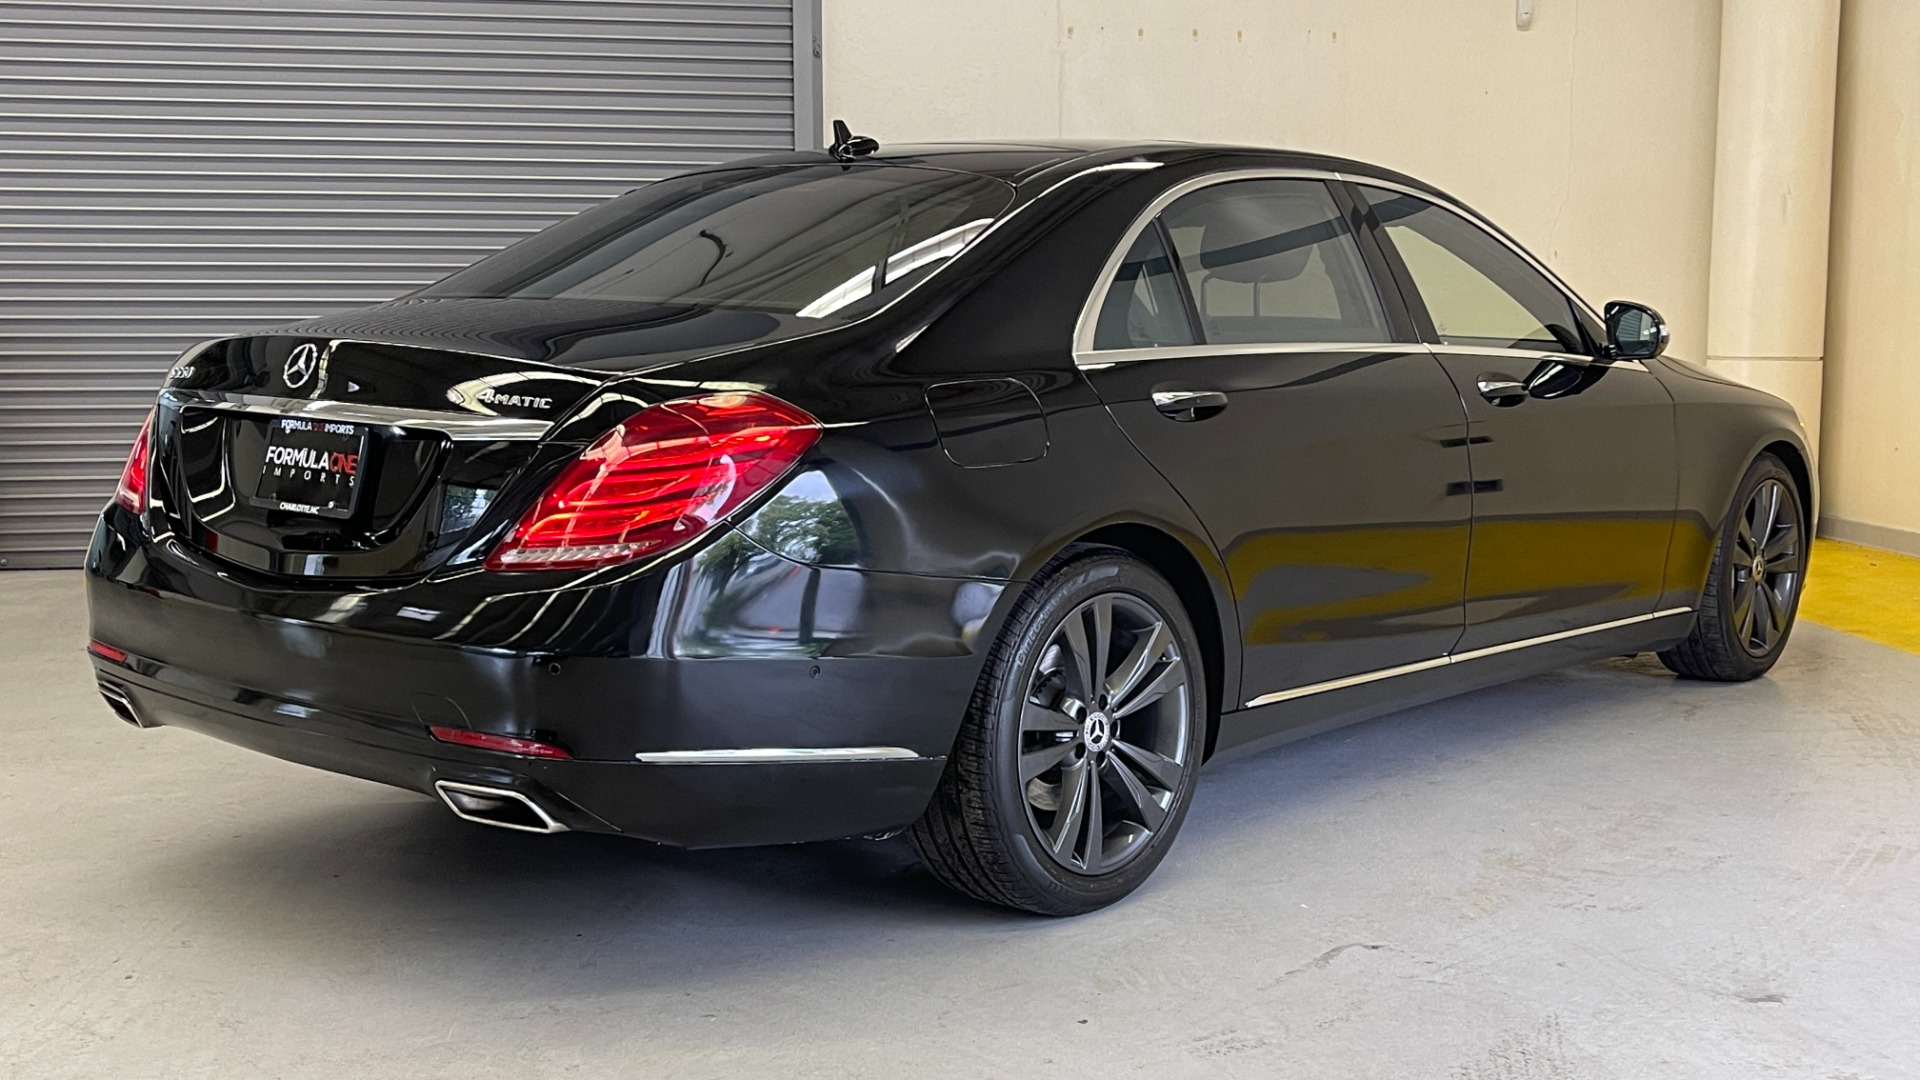 Used 2017 Mercedes-Benz S-CLASS S 550 4MATIC PREMIUM / NAV / BURMESTER / SUNROOF / REARVIEW for sale $58,995 at Formula Imports in Charlotte NC 28227 5